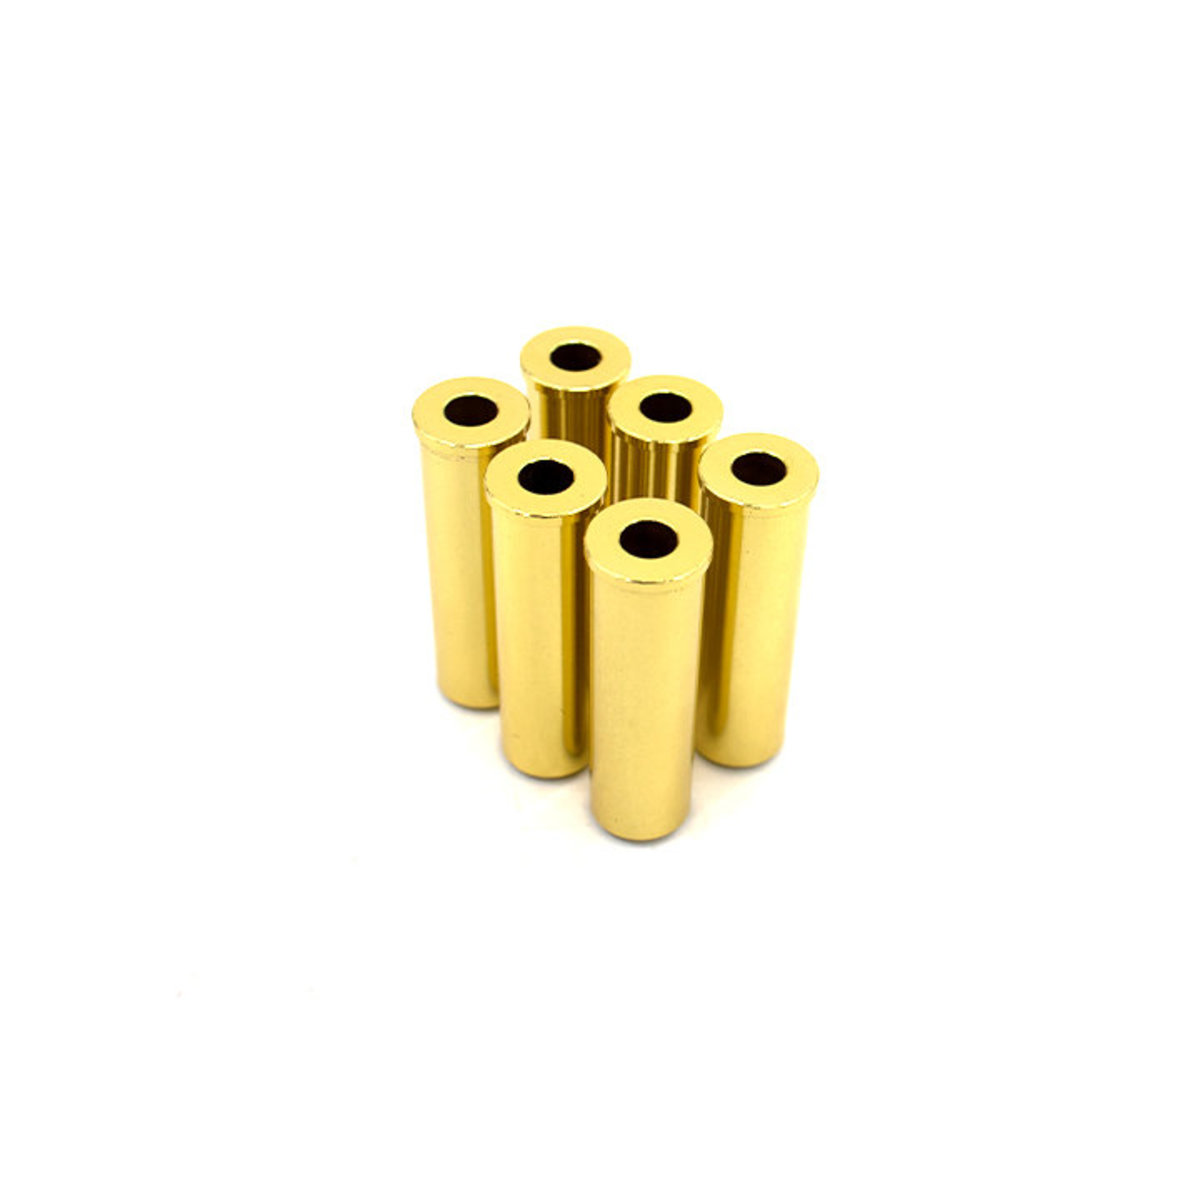 View larger image of Valken Infinity Spare Brass Revolver Shells - 6 Pack (Green Gas)